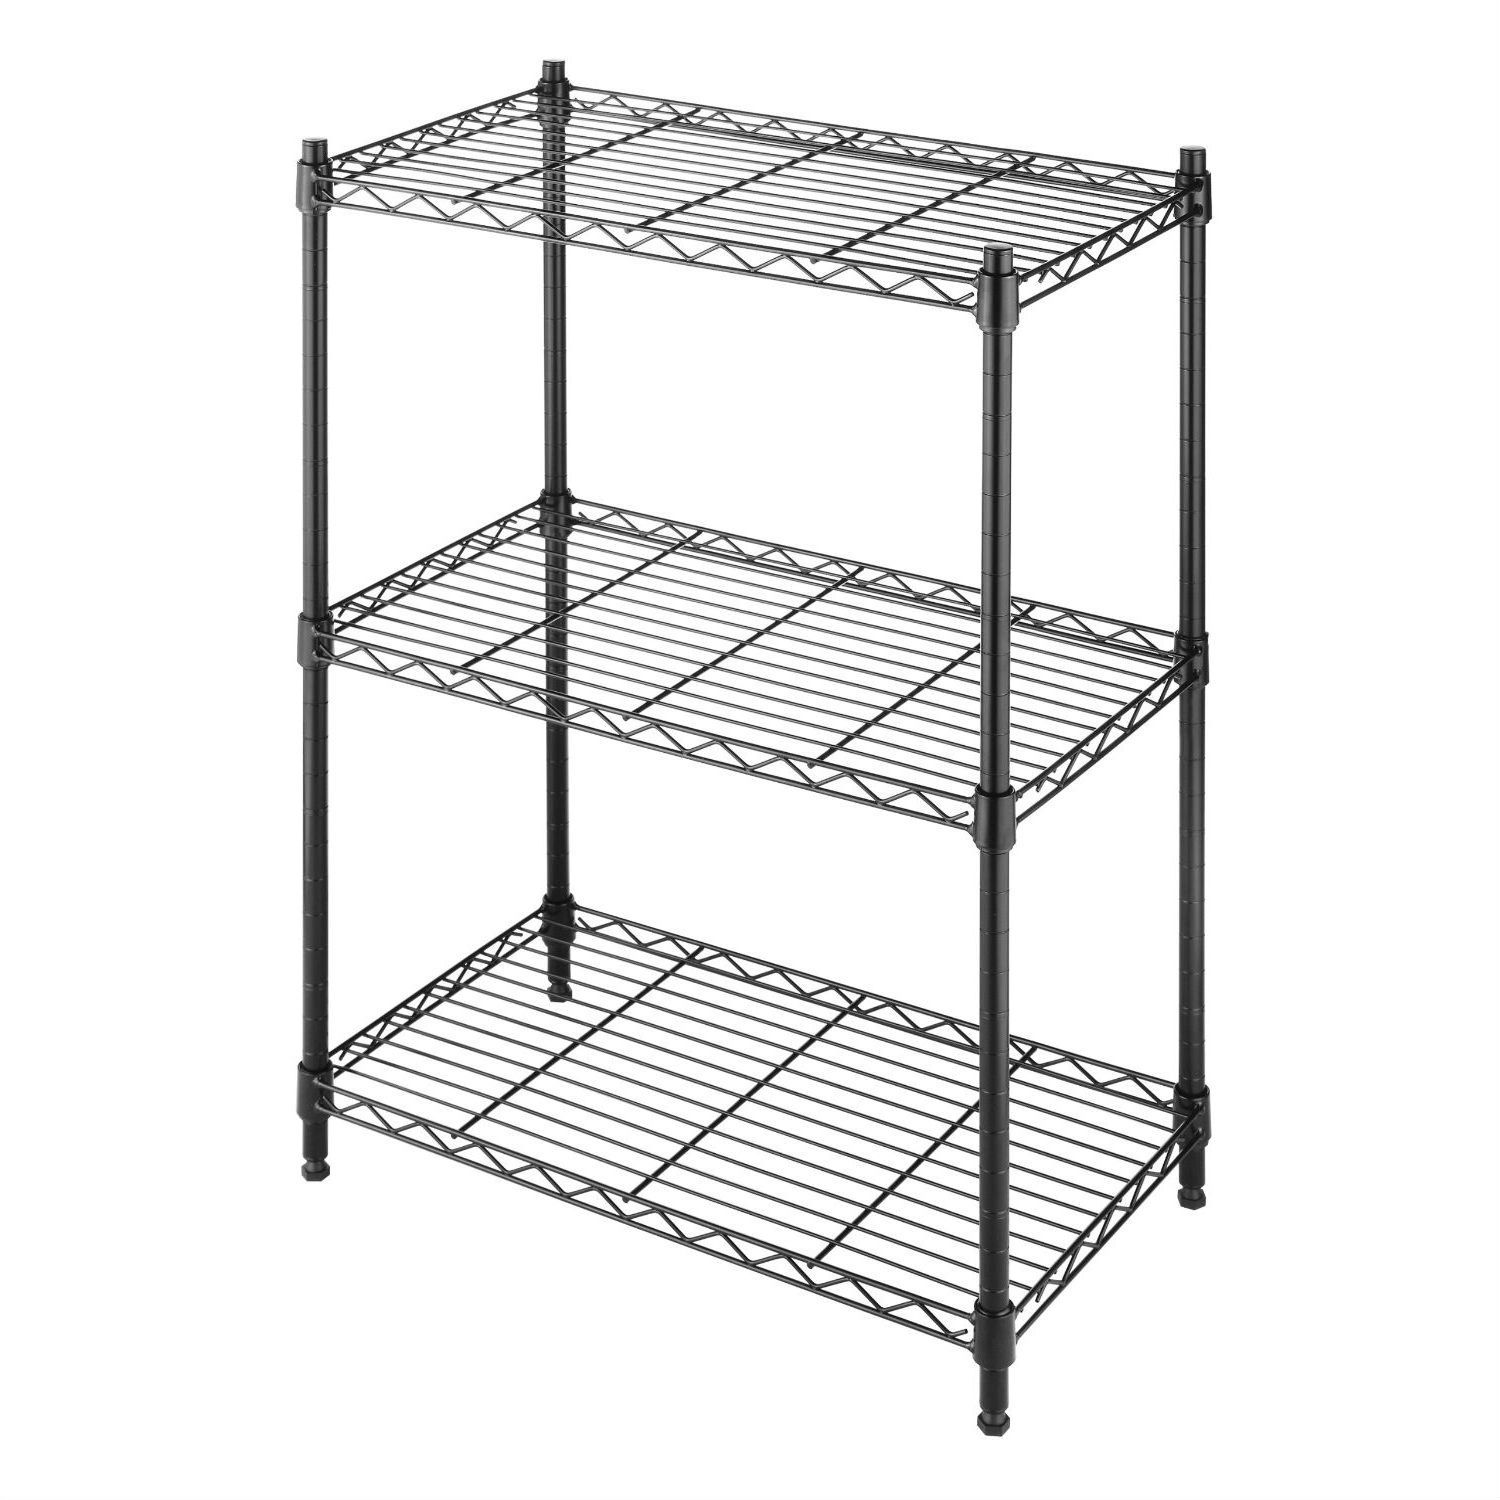 Regal Schwarz Metall Black Metal Patio Chairs Stühle Storage Shelves Storage Rack